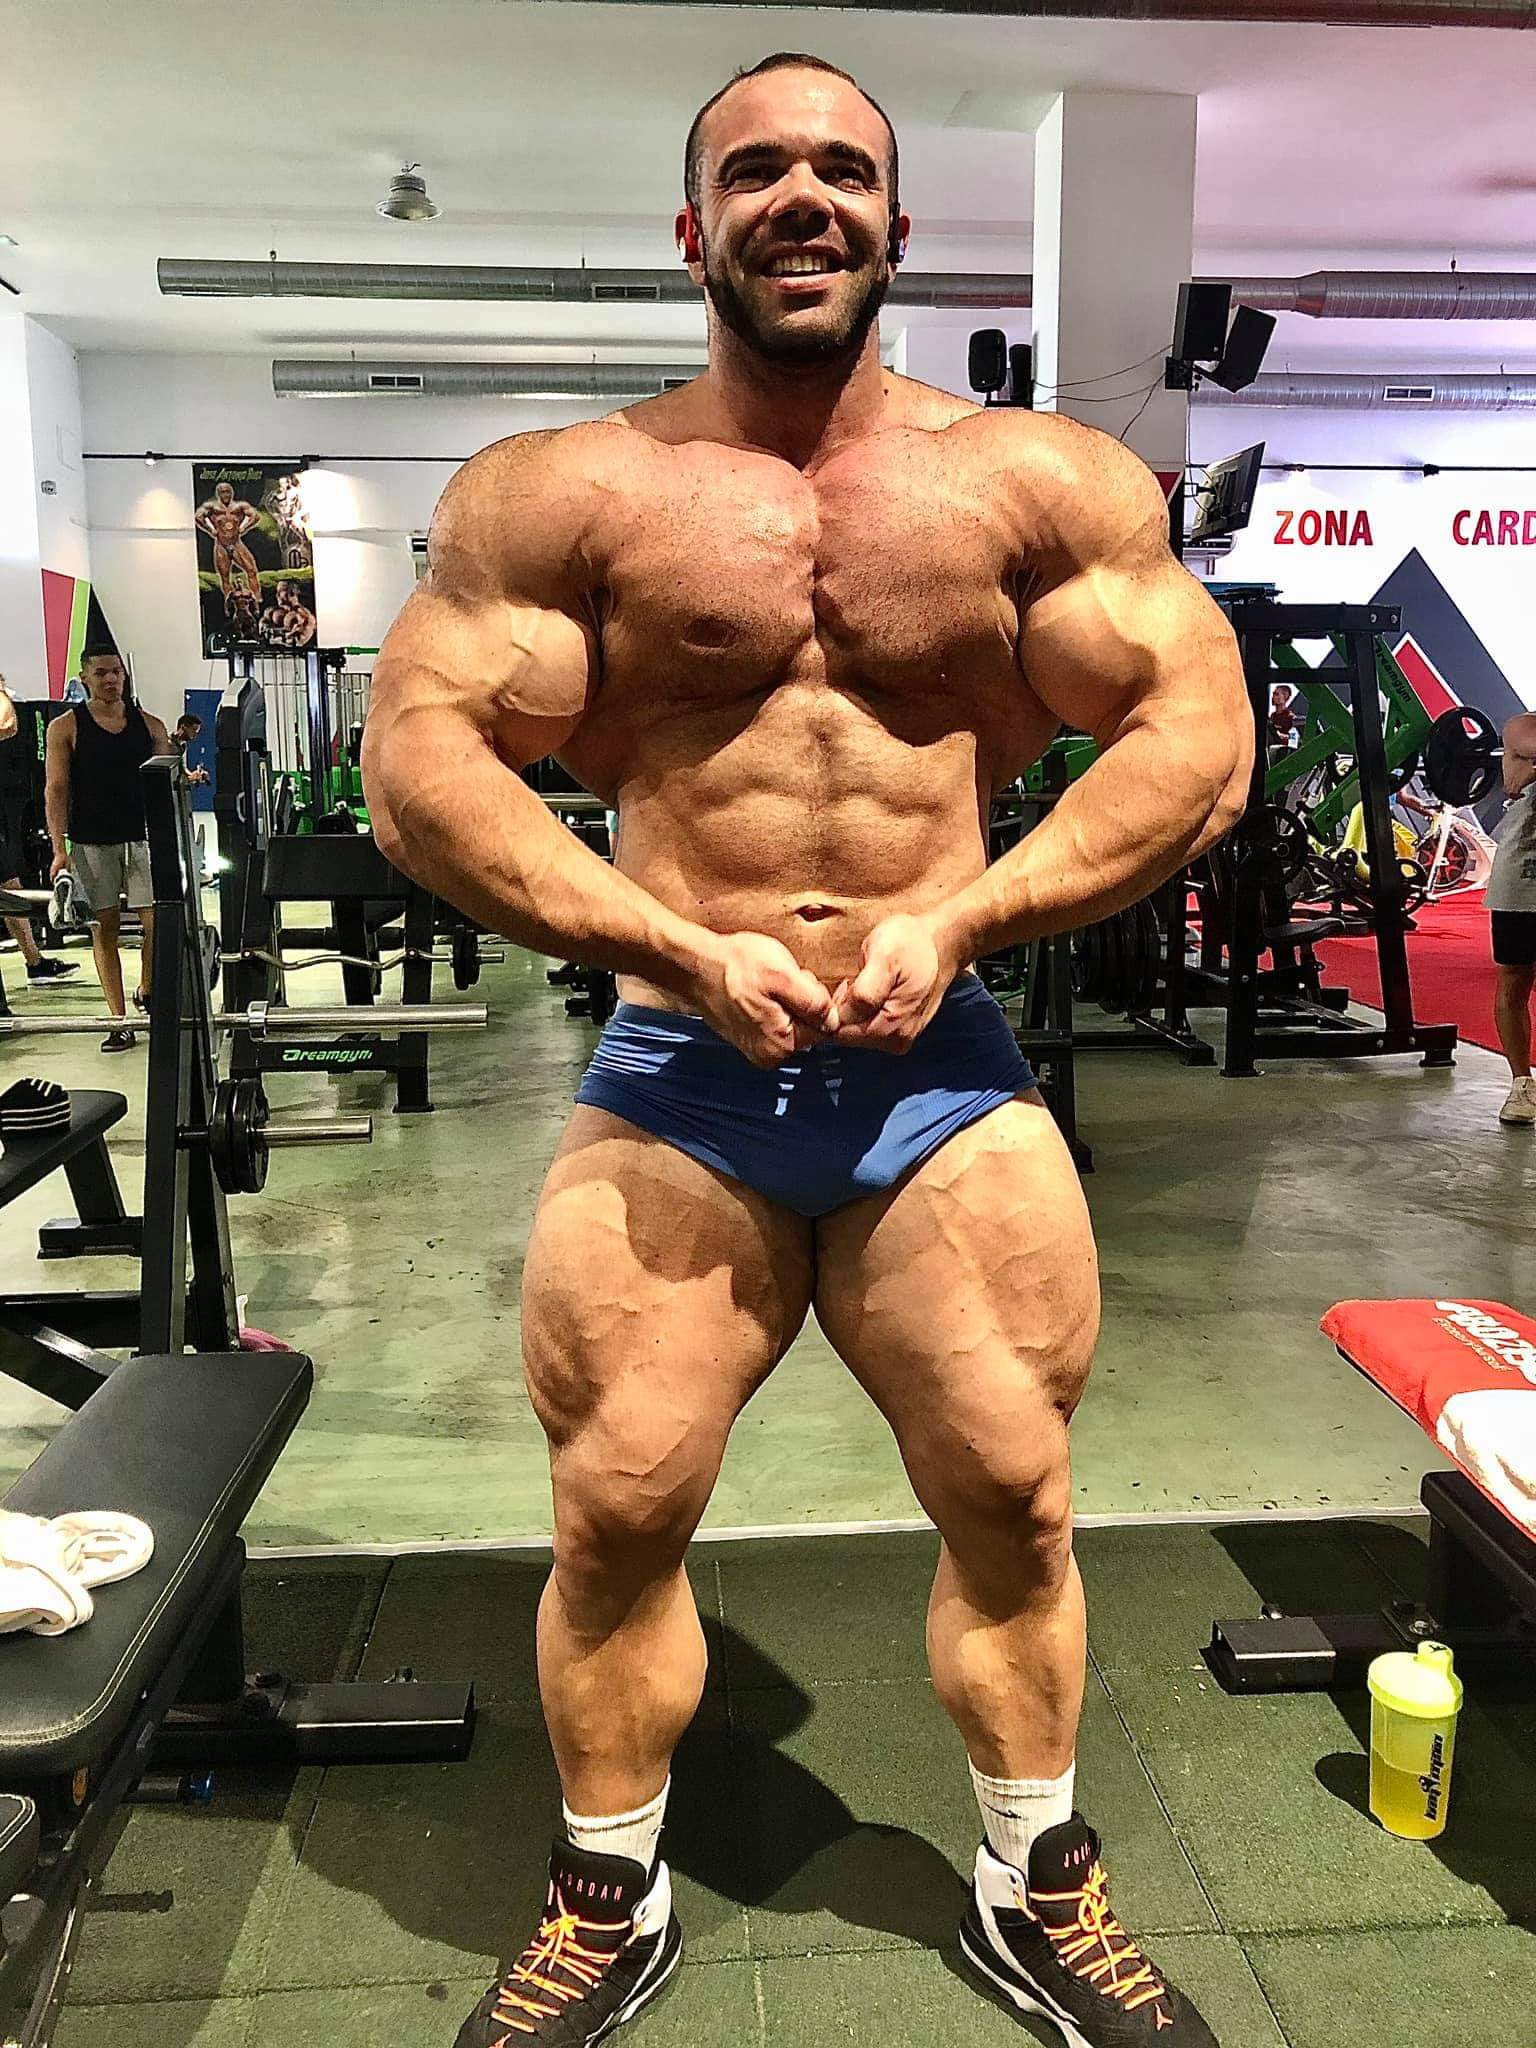 Gregory Bellot IFBB ELITE PRO di luglio 2020 most muscular pose